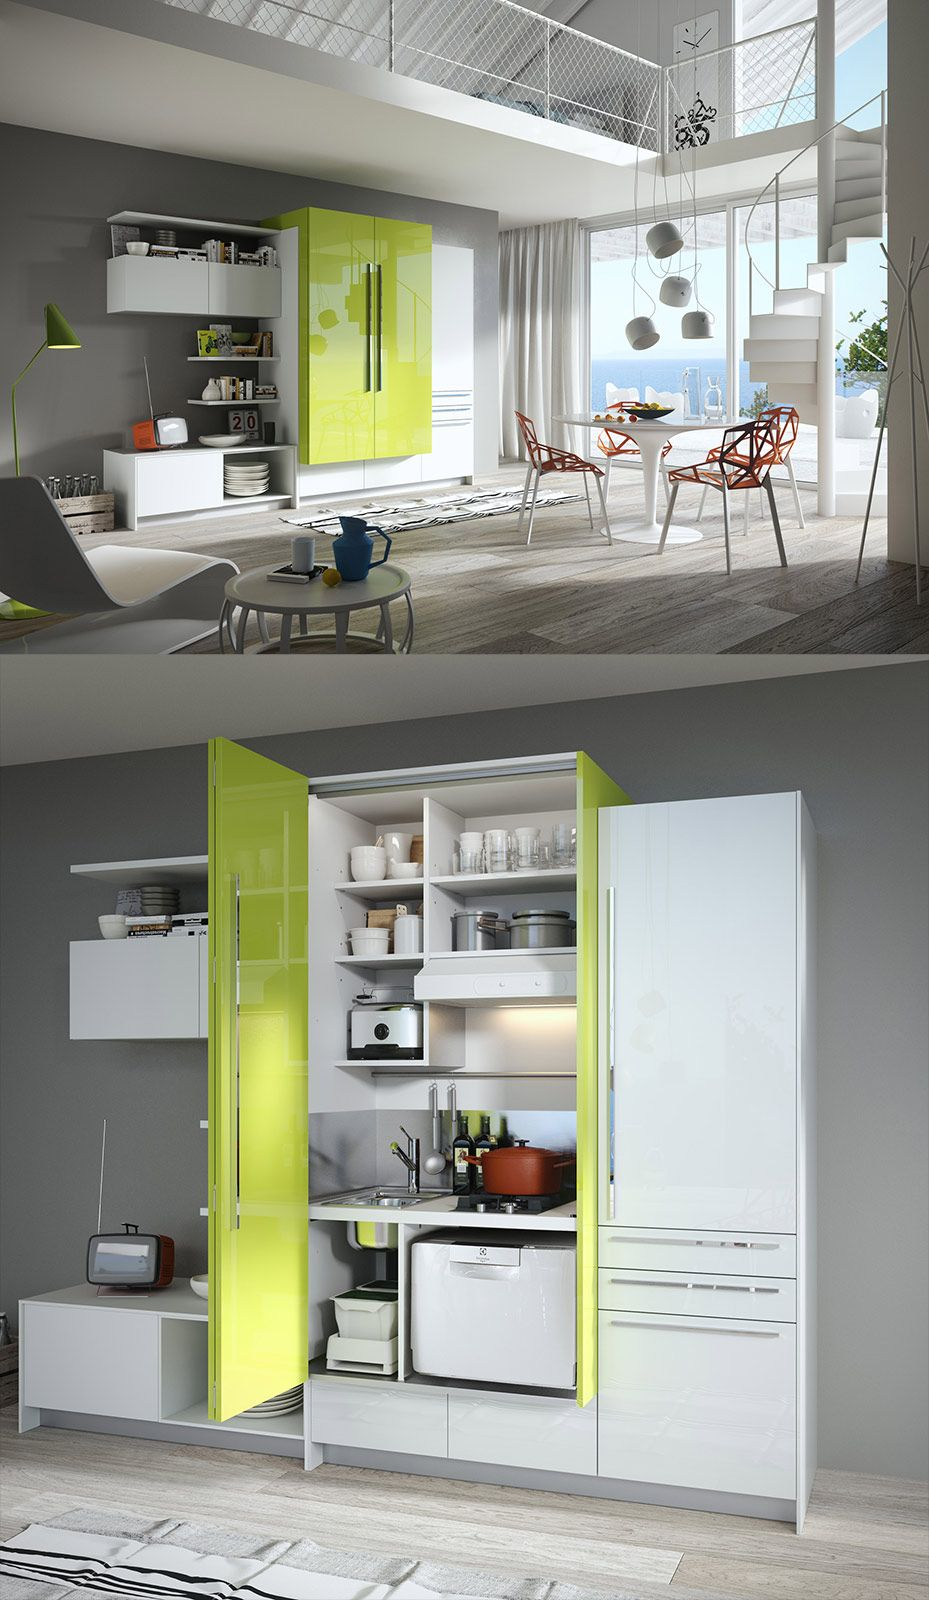 La cucina nell 39 armadio idee ikea home decor small - Cucina living ikea ...